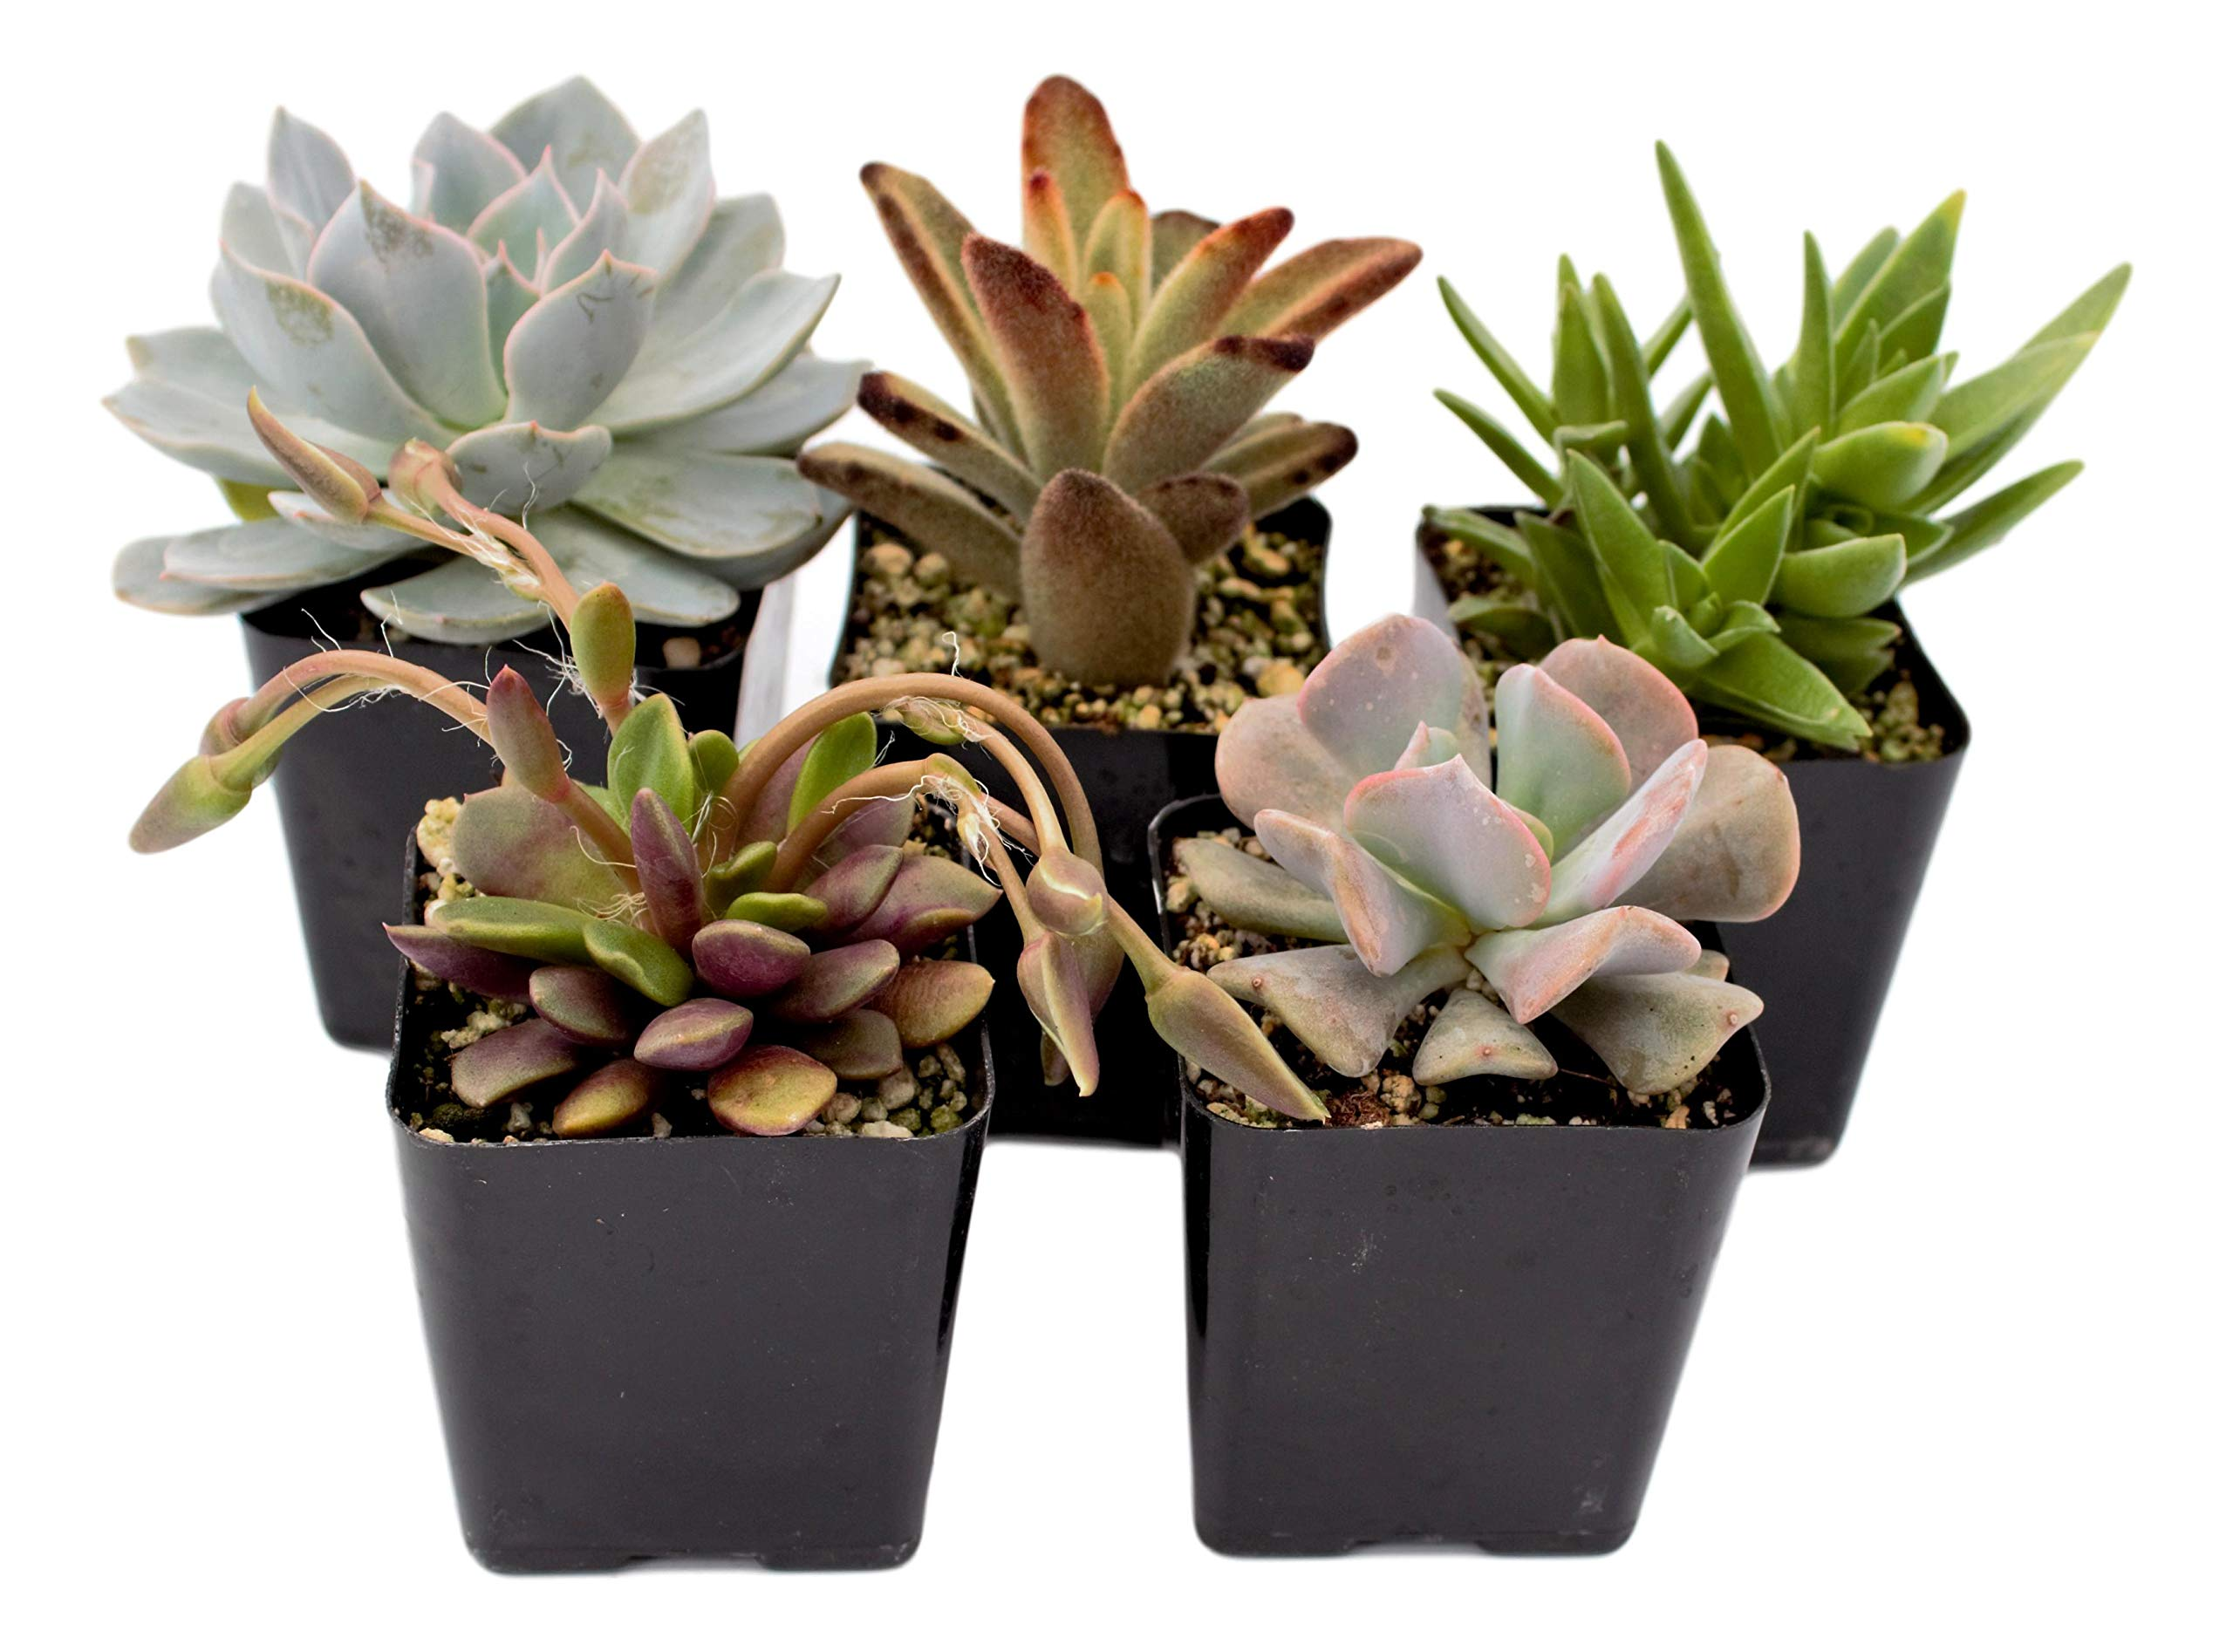 Fat Plants San Diego Premium Succulent Plant Variety Package. Live Indoor Succulents Rooted in Soil in a Plastic Growers Pot (5)